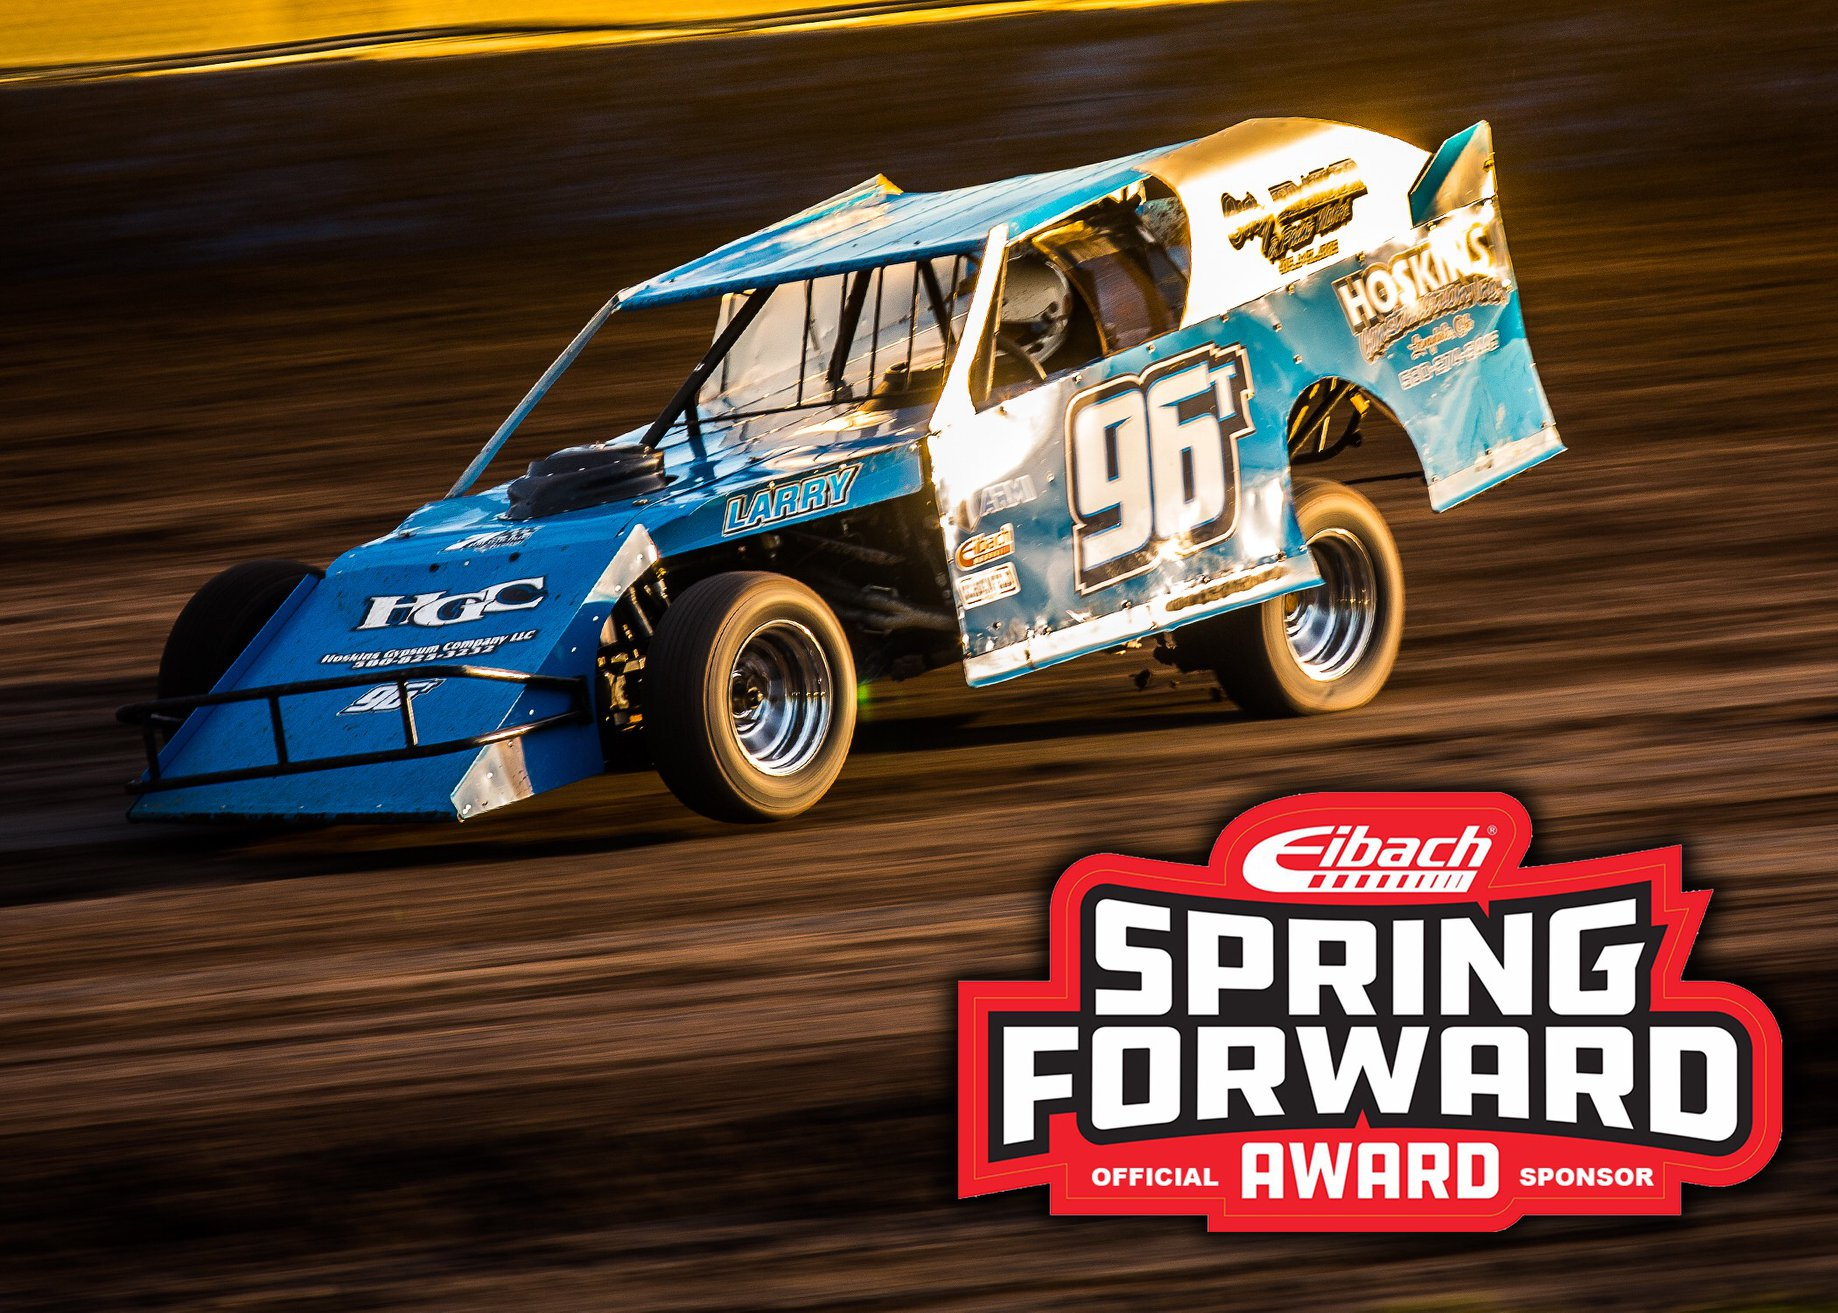 USMTS 2020 Spring Forward Award sponsored by Eibach